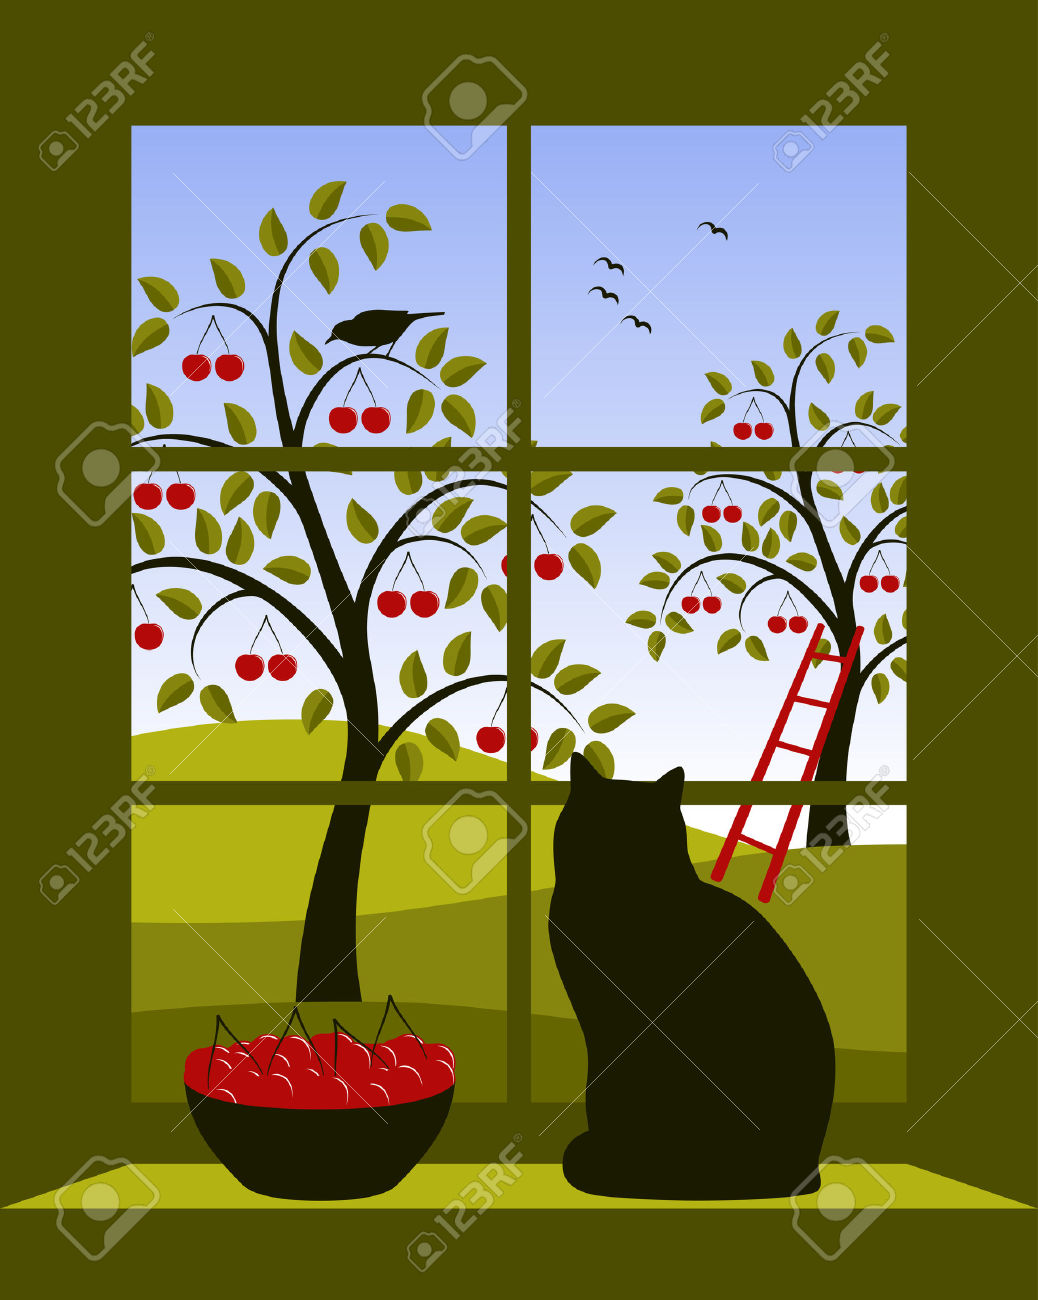 Window to outside clipart - Clipground for Outside Window Clipart  193tgx